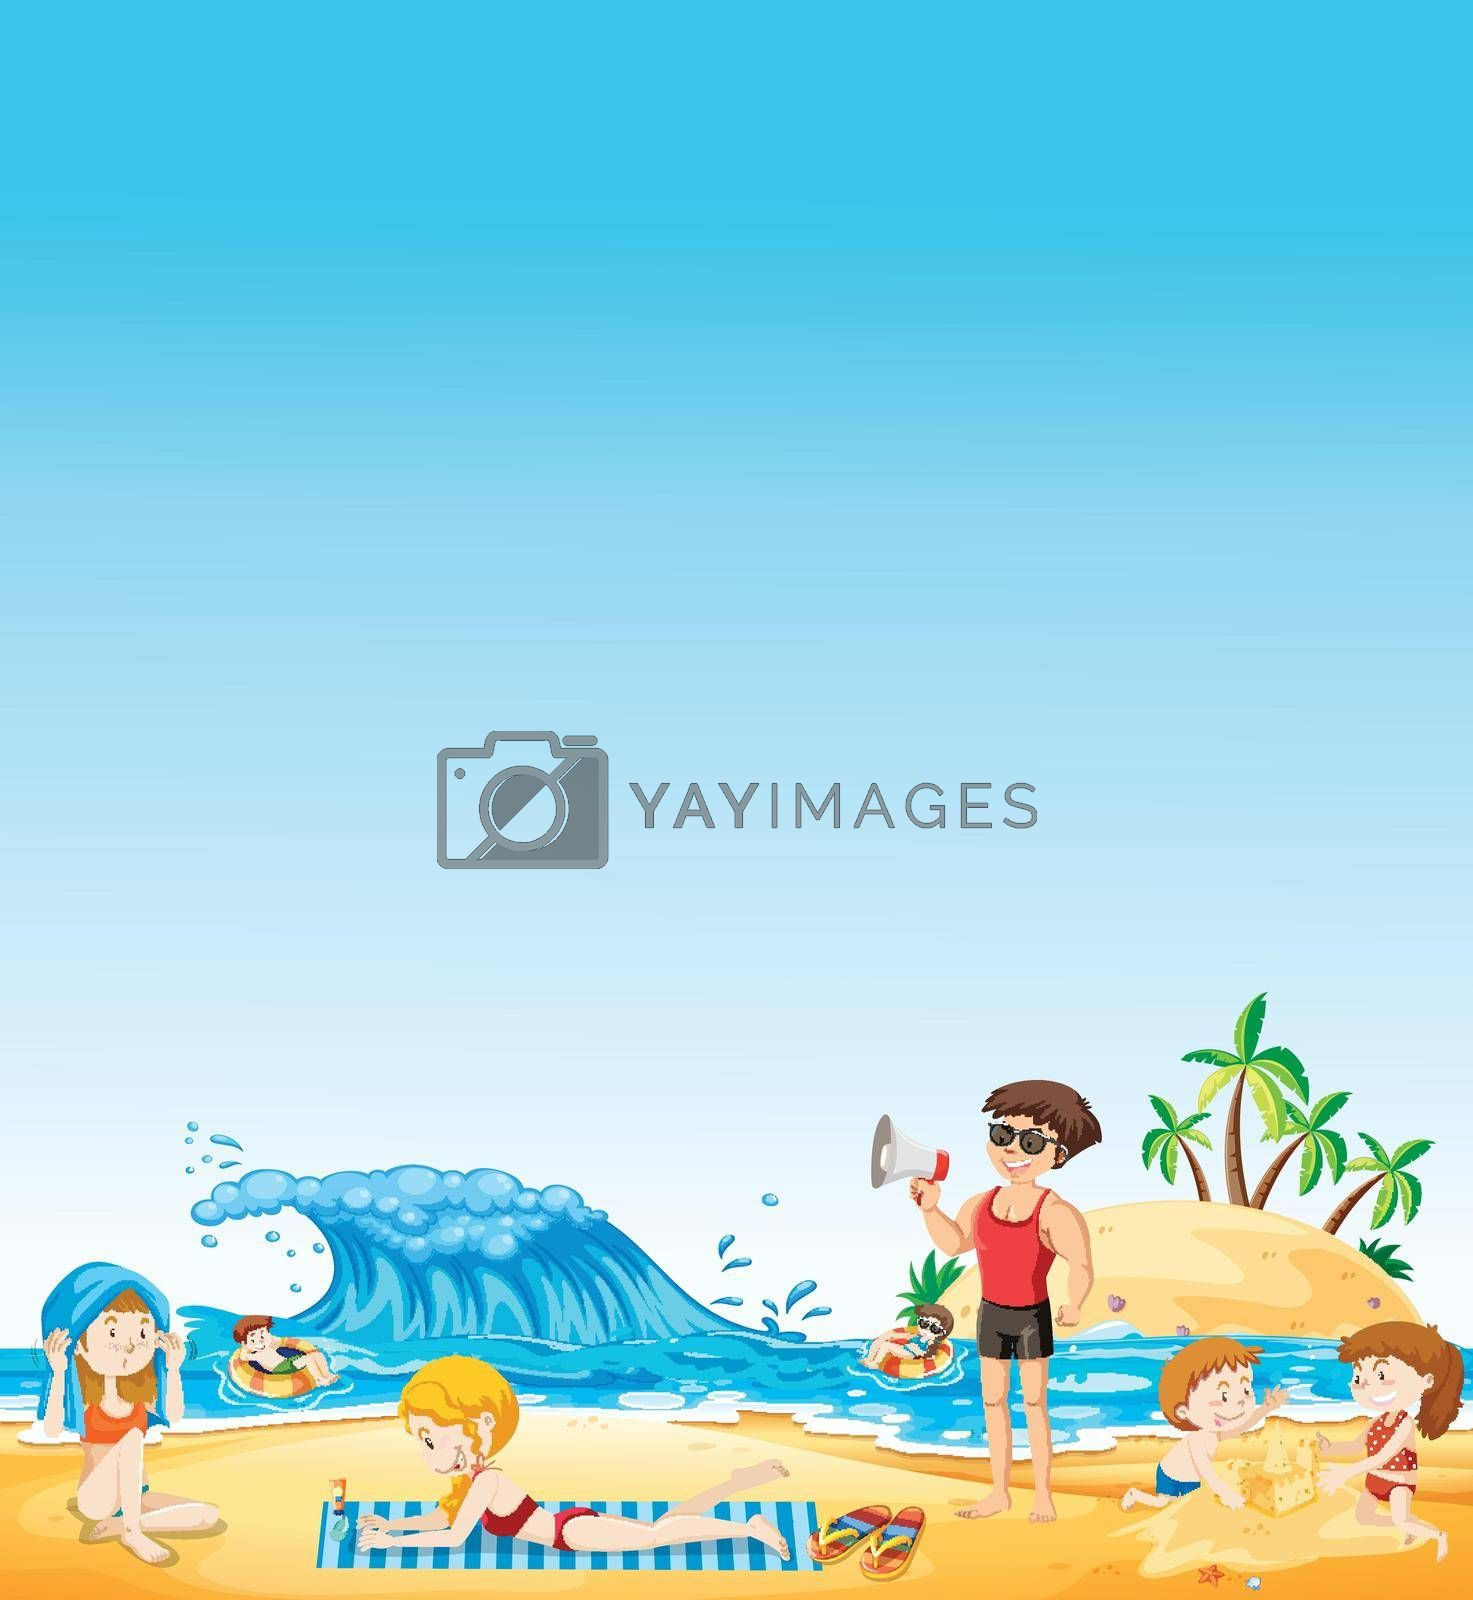 Royalty free image of People at the beach by iimages